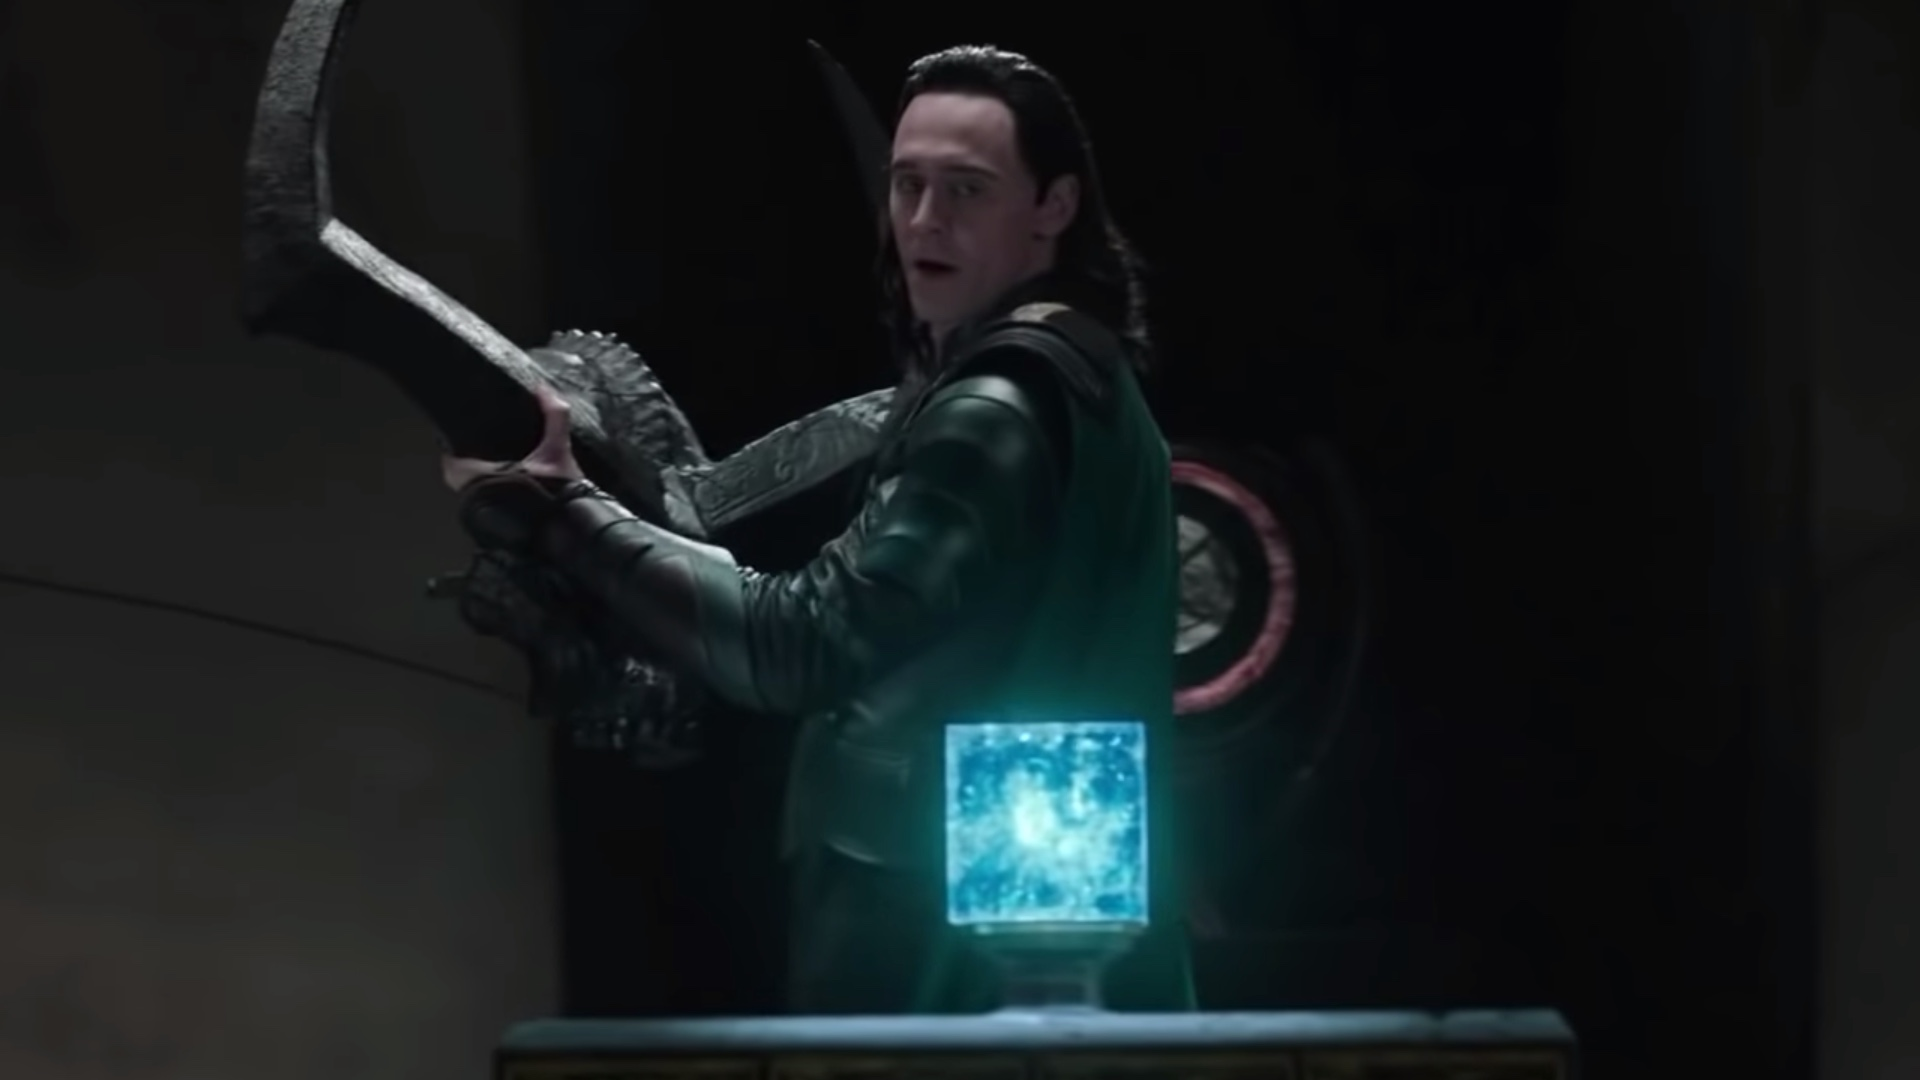 in-depth-fan-theory-on-how-loki-fooled-everyone-with-a-new-trick-in-avengers-endgame-social.jpg